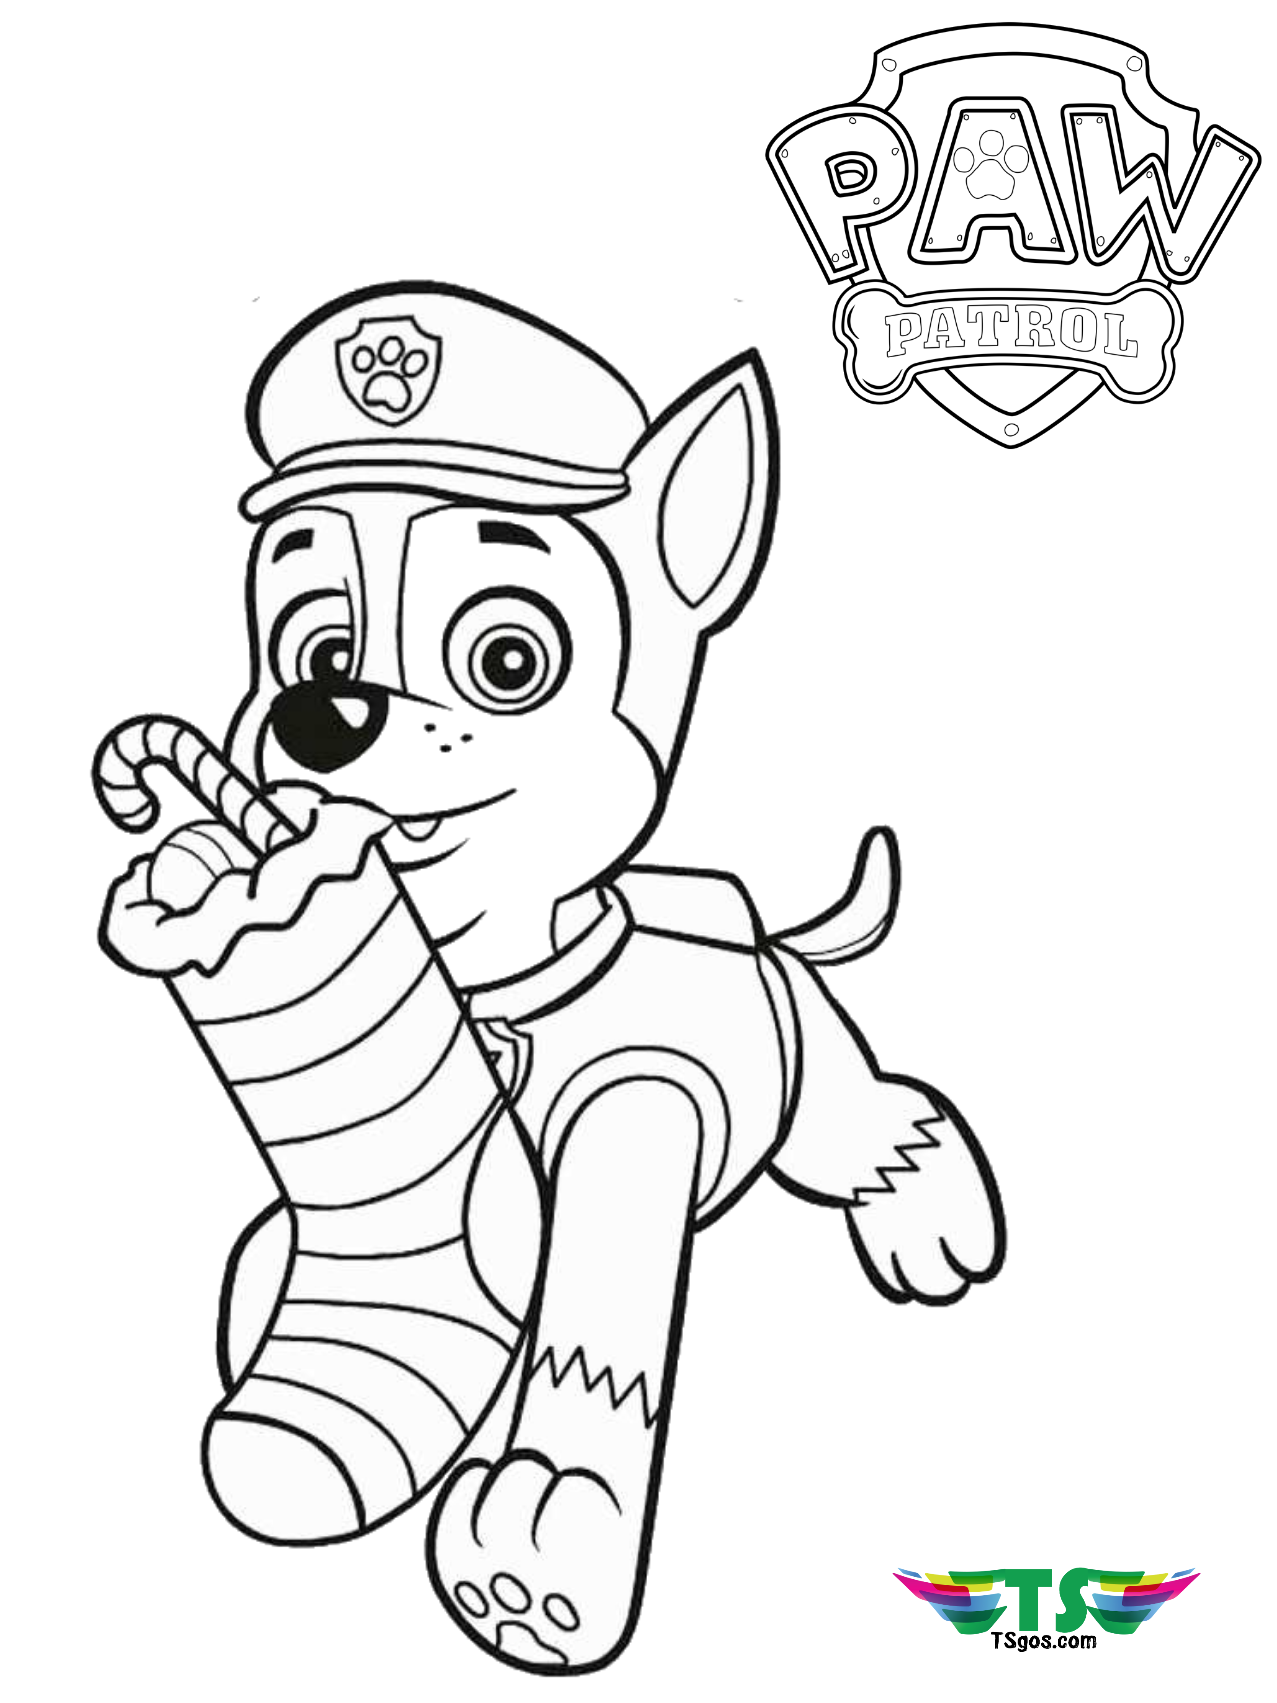 print paw patrol coloring pages get this paw patrol coloring pages free to print 62046 patrol coloring pages print paw